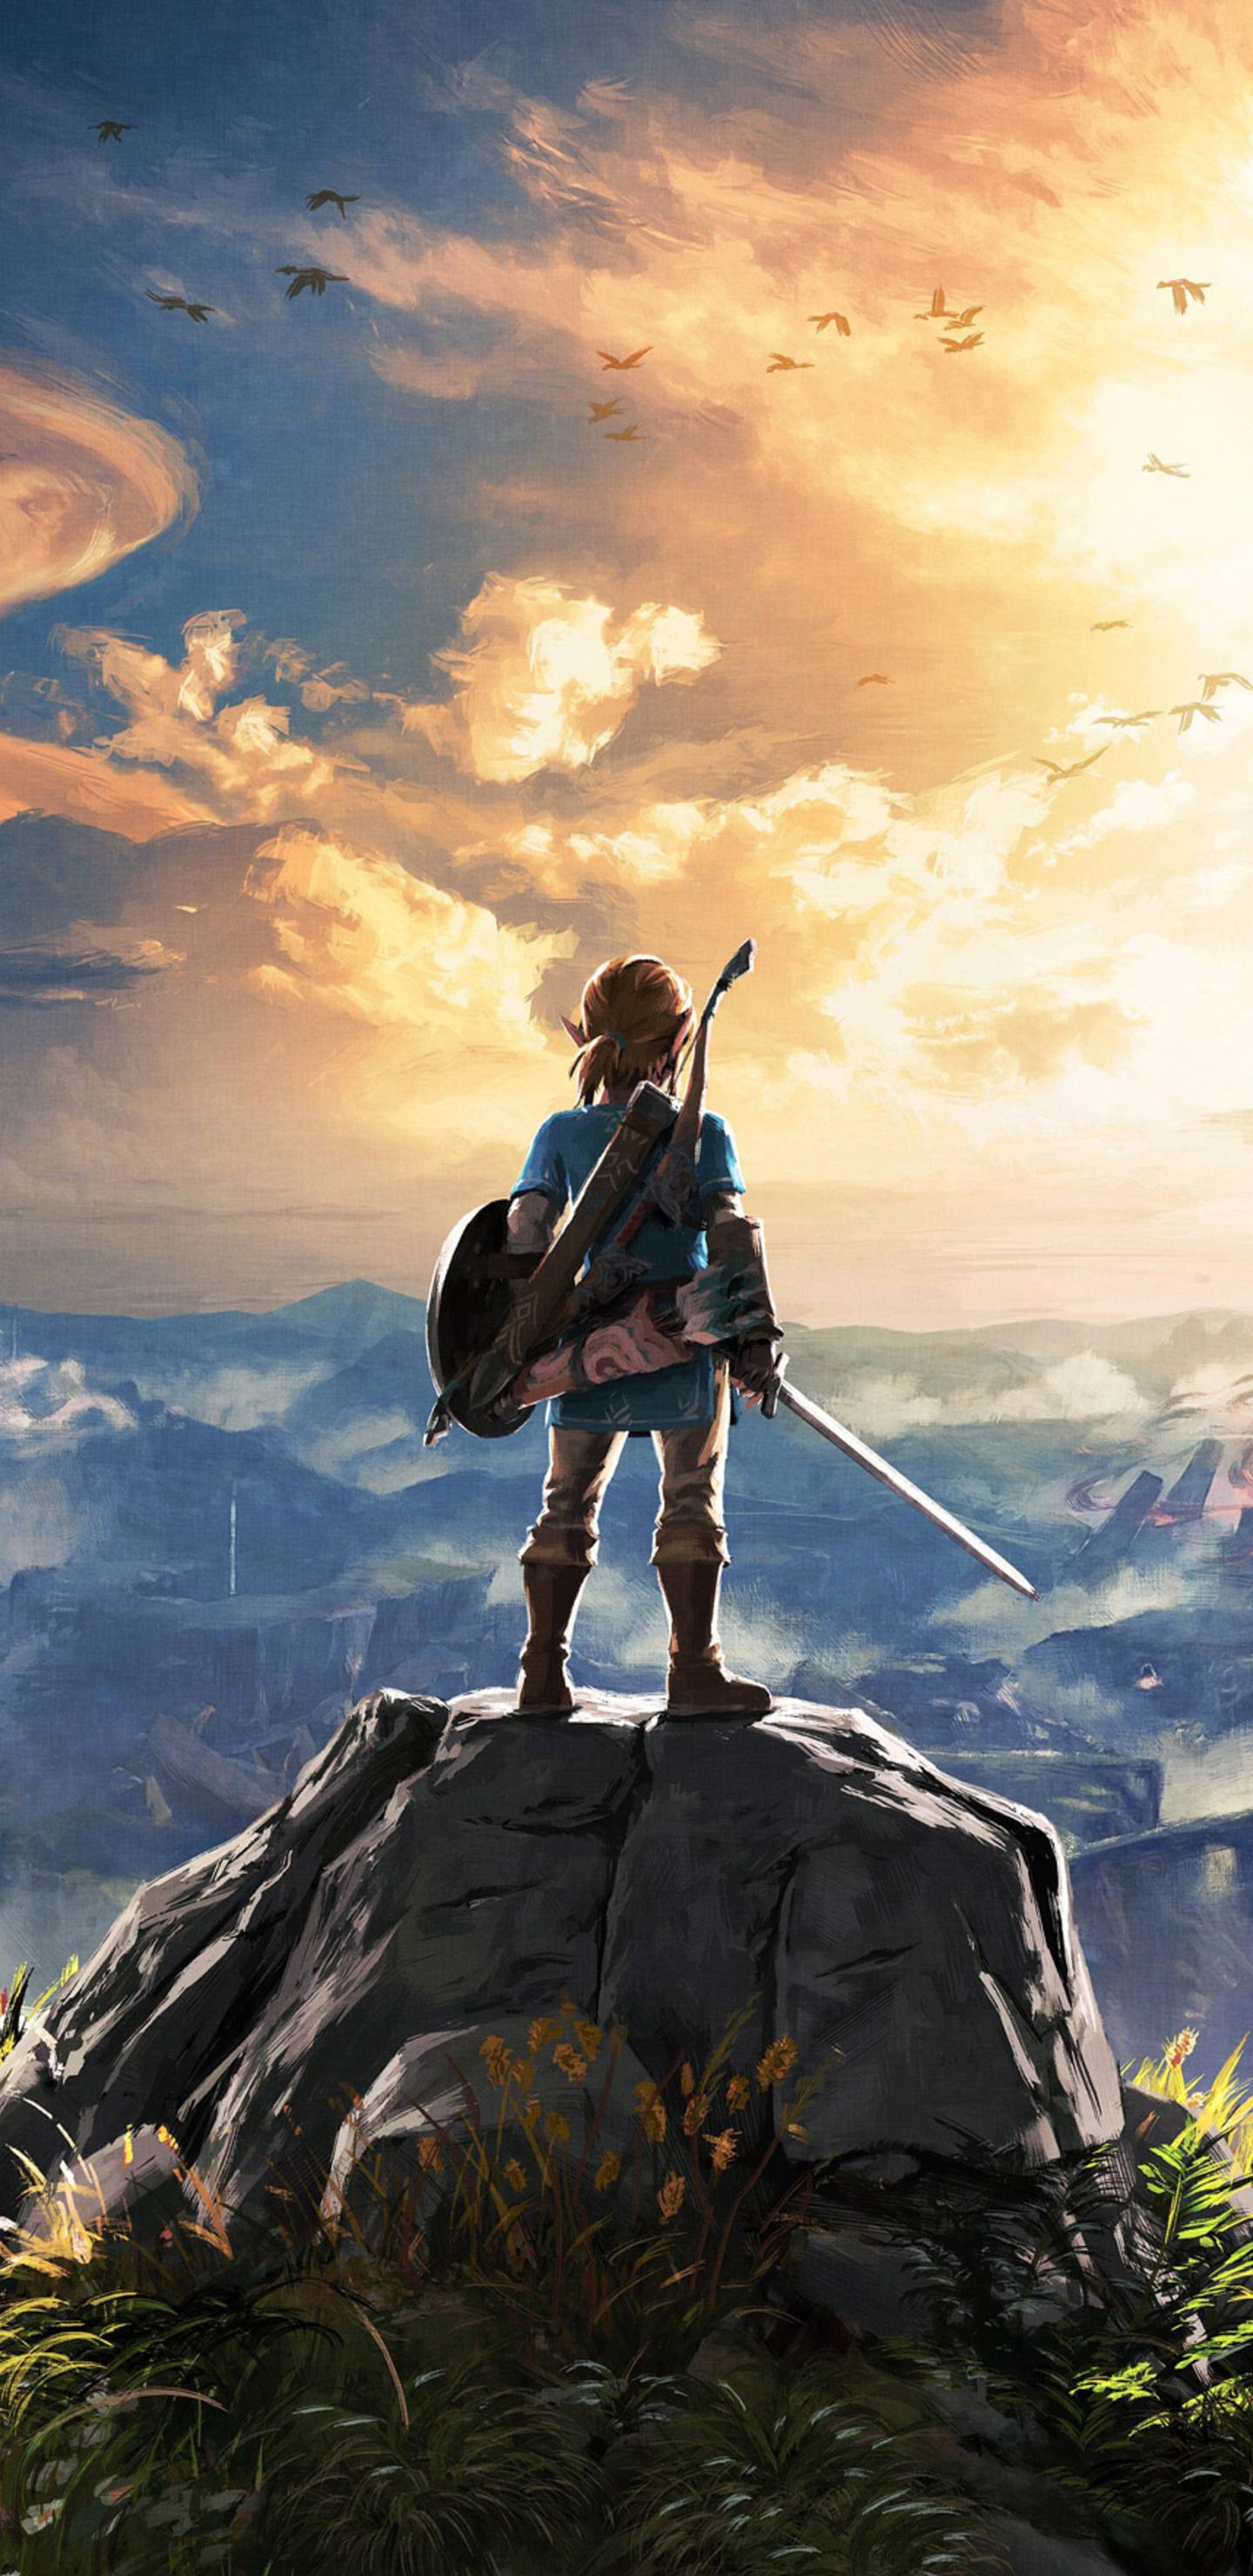 1440x2960 the legend of zelda breath of the wild 4k - Samsung s9 wallpaper 4k ...